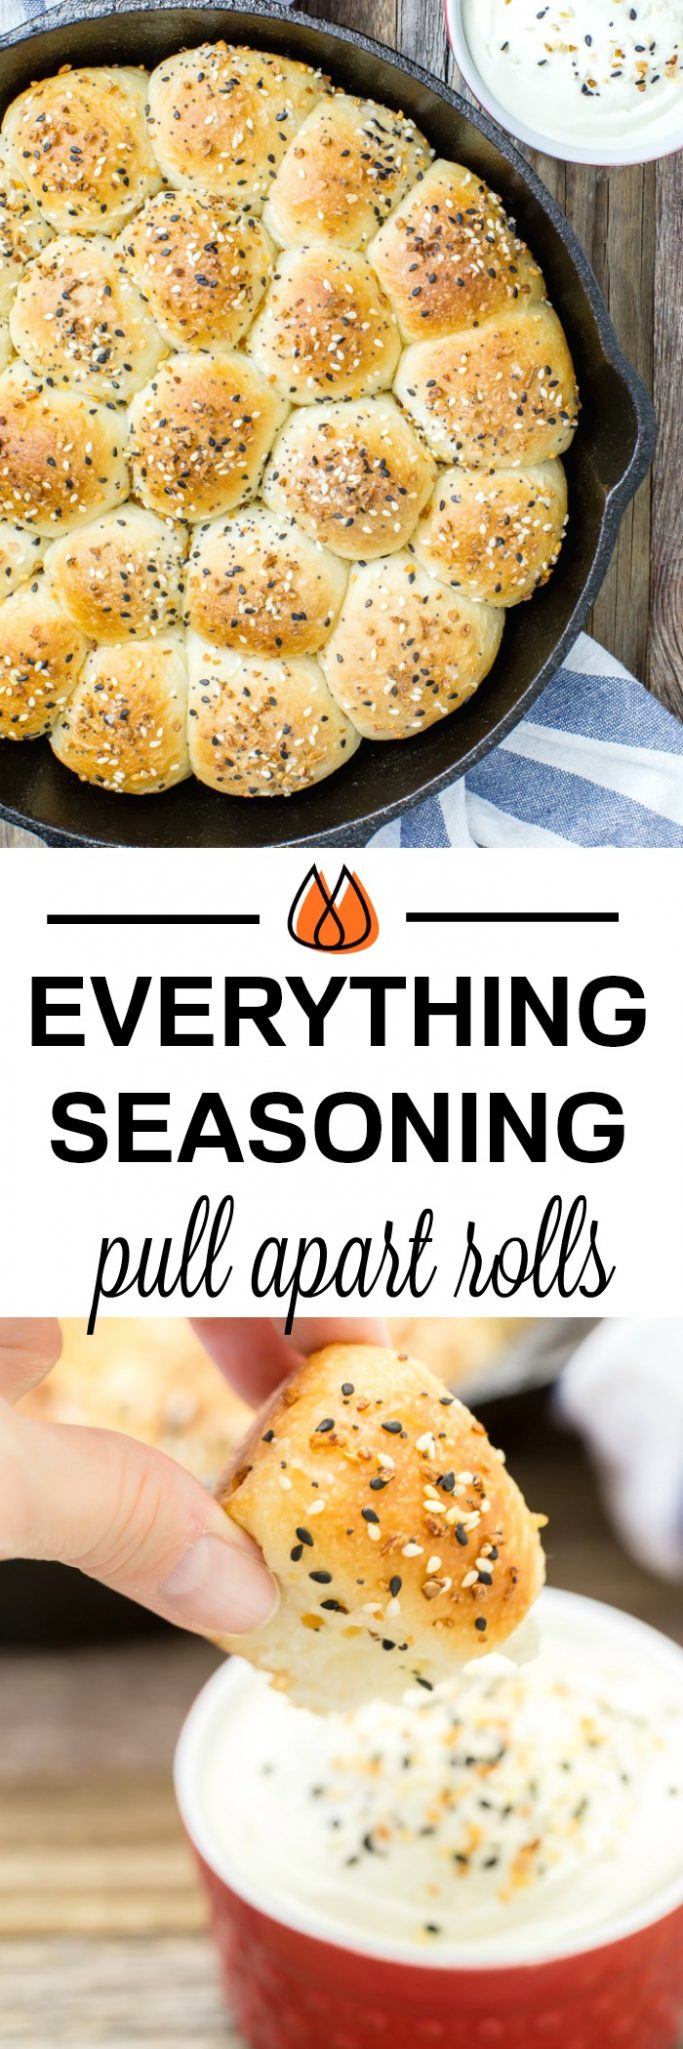 Make these easy everything seasoning pull apart rolls with a creamy cream cheese dipping sauce. It's like your favorite bagel but much easier to make at home!